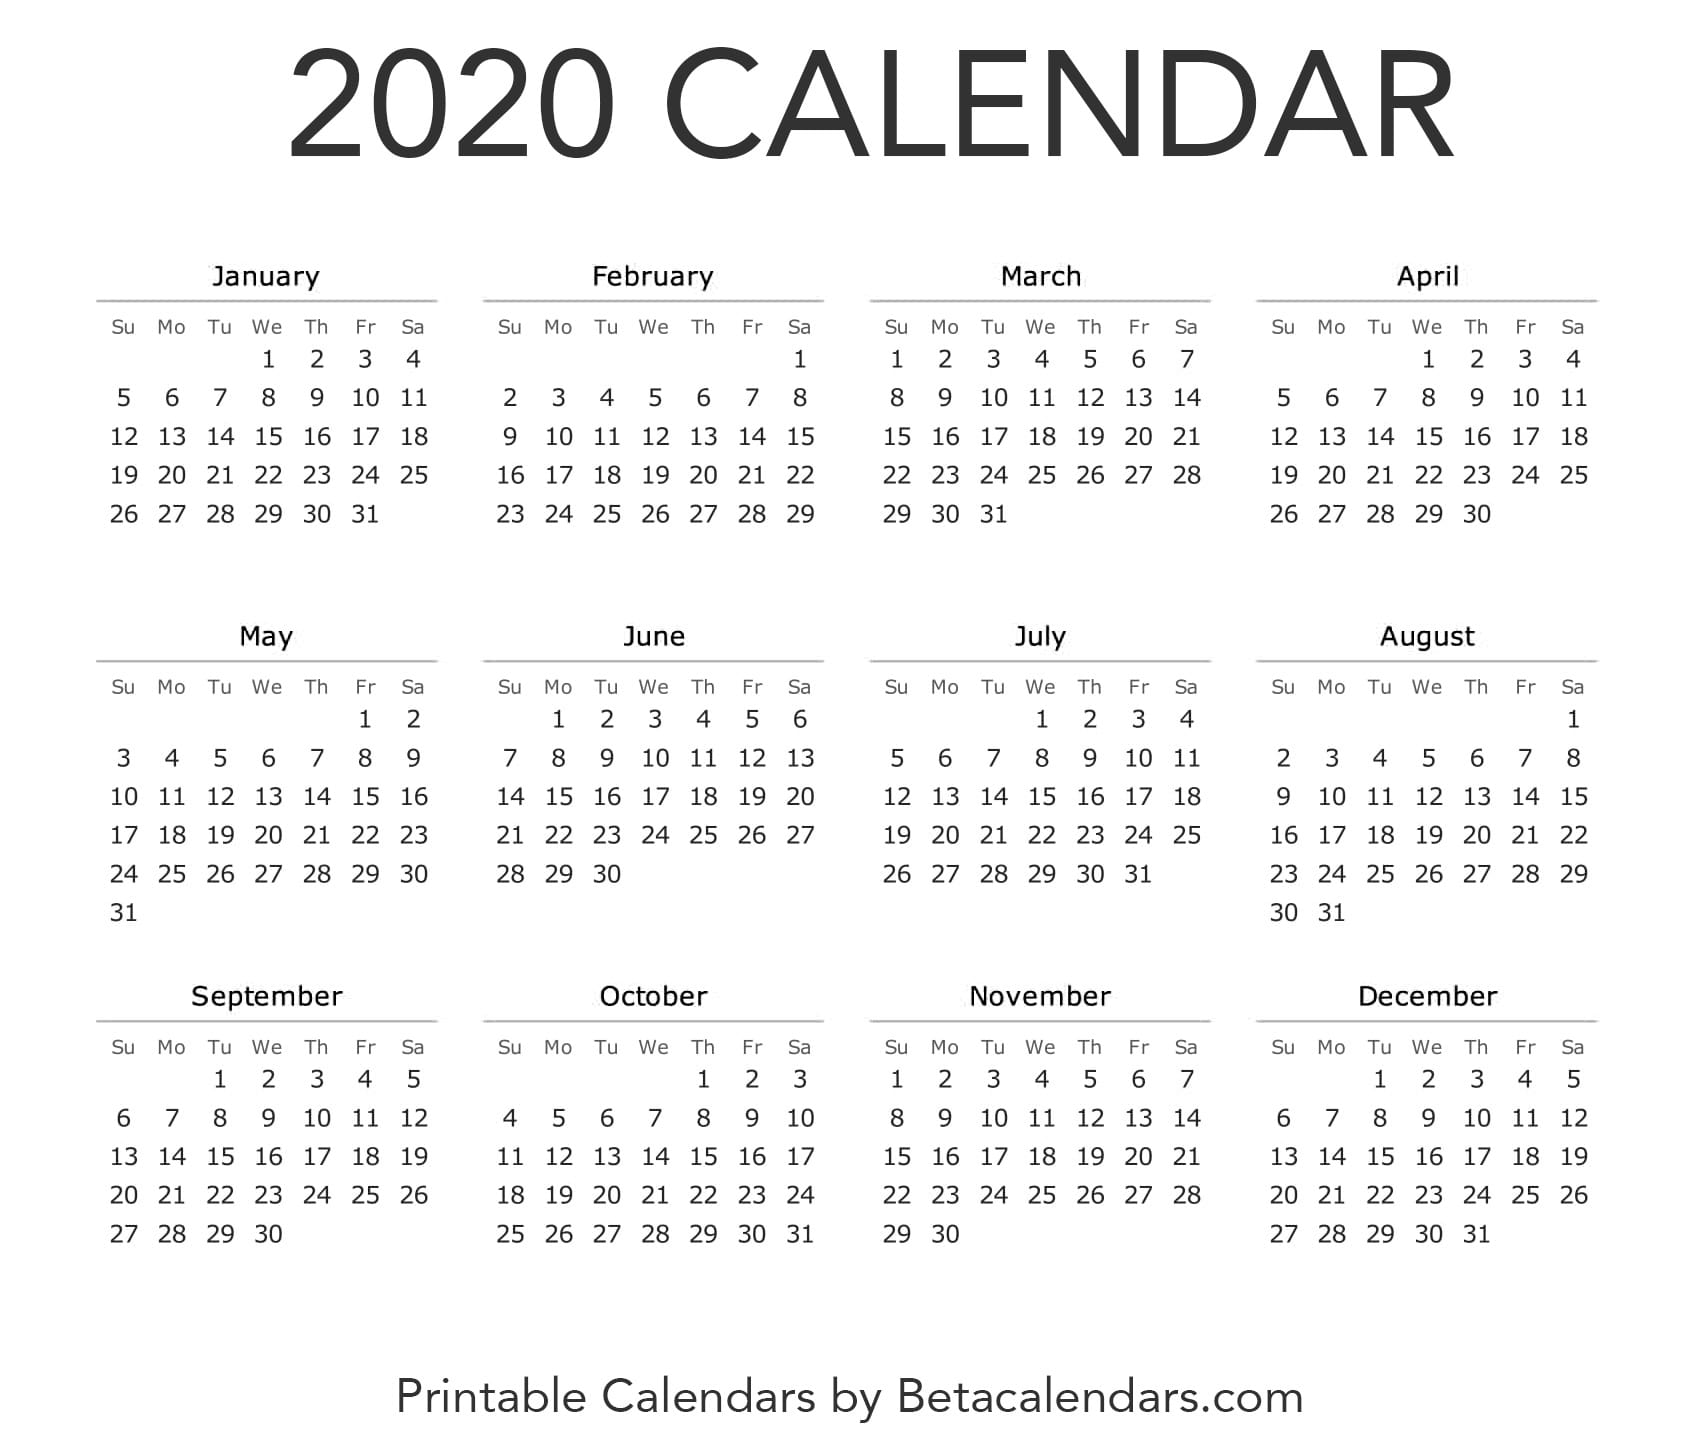 photograph relating to Free Printable 2020 Calendar called 2020 Calendar - Beta Calendars